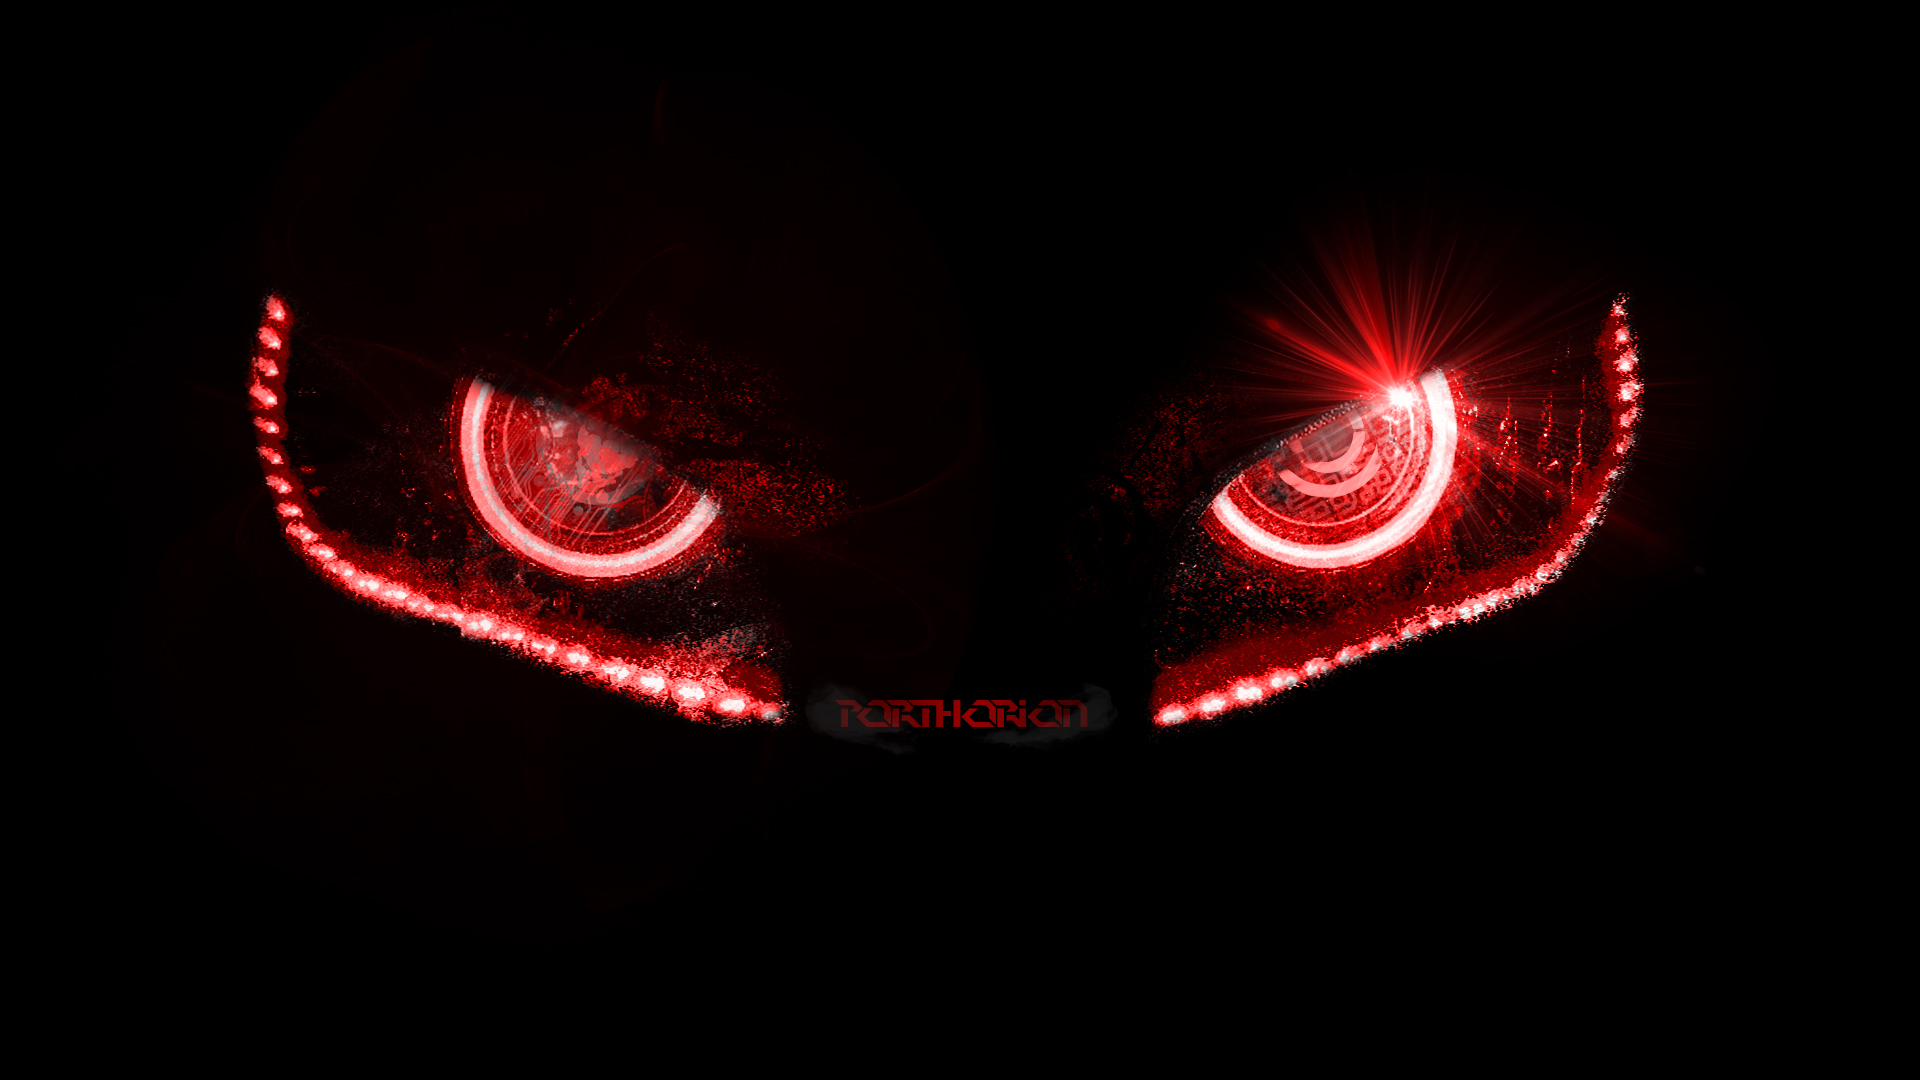 evil robotic eyes without lines by porthorion customization wallpaper 1920x1080